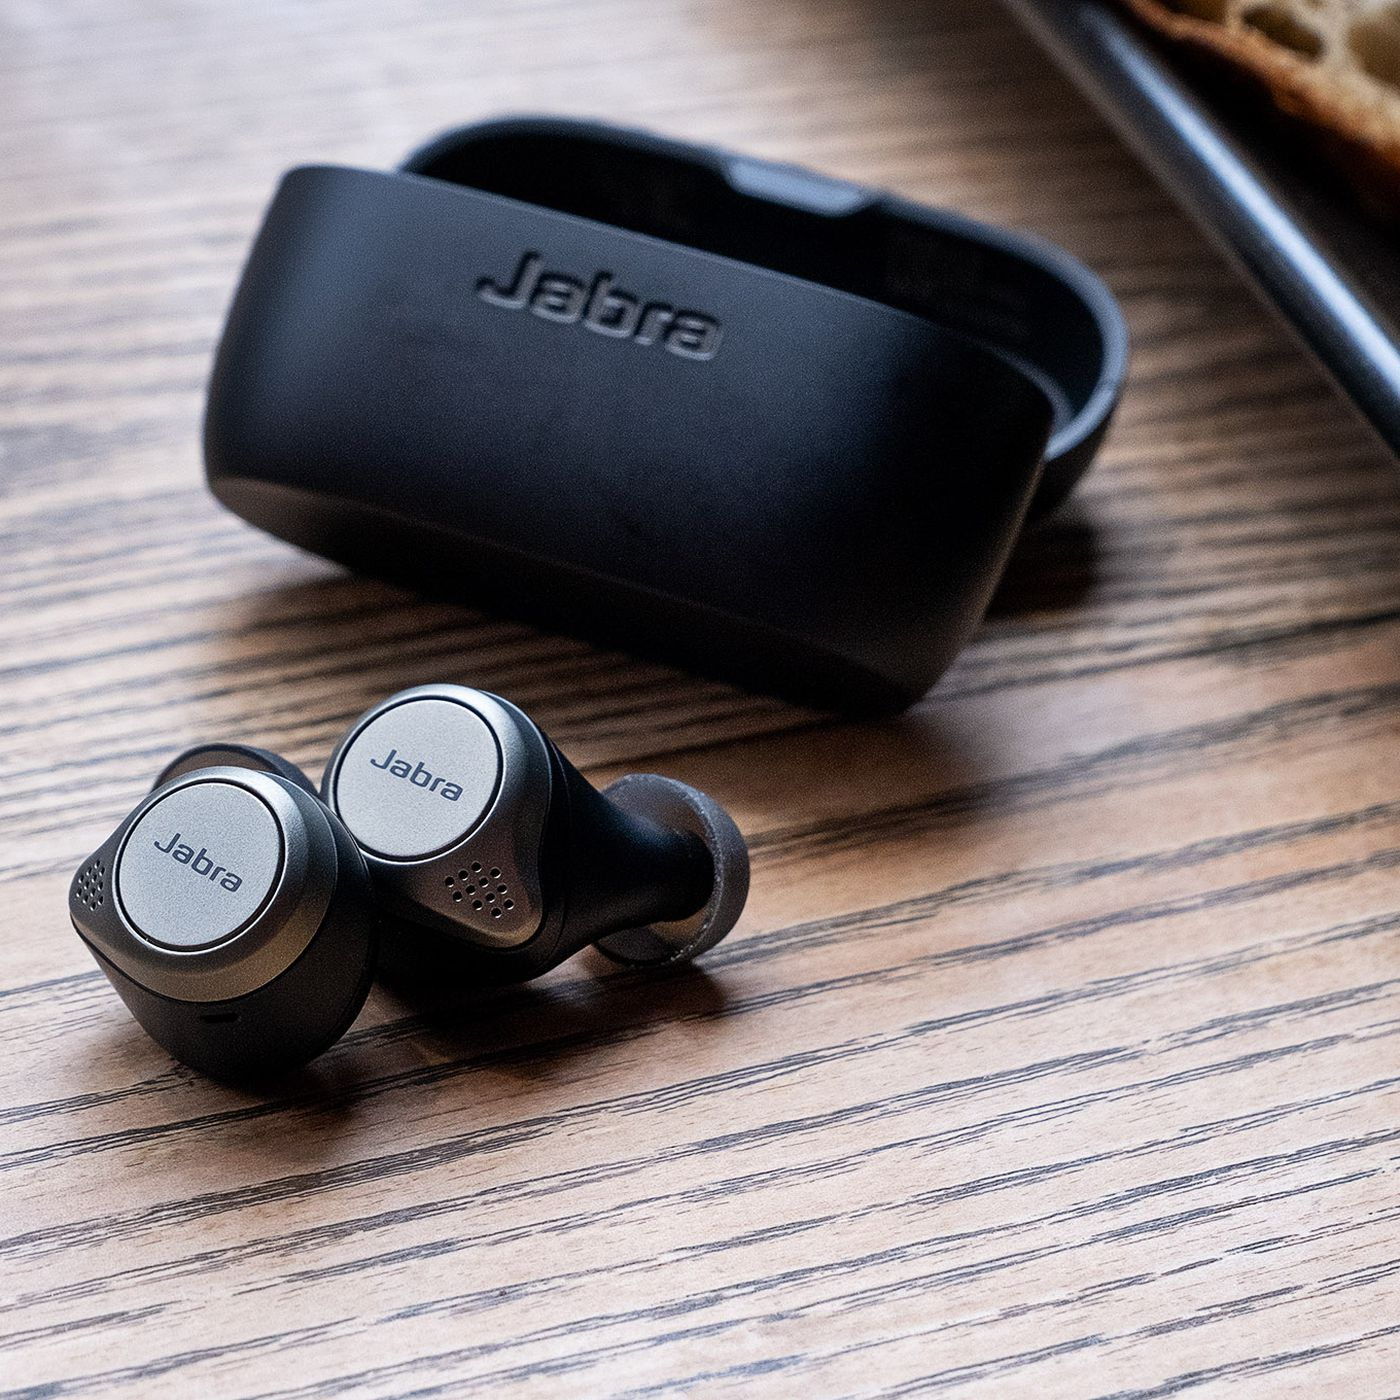 Jabra S Excellent Elite 75t Wireless Earbuds Are 30 Off The Verge